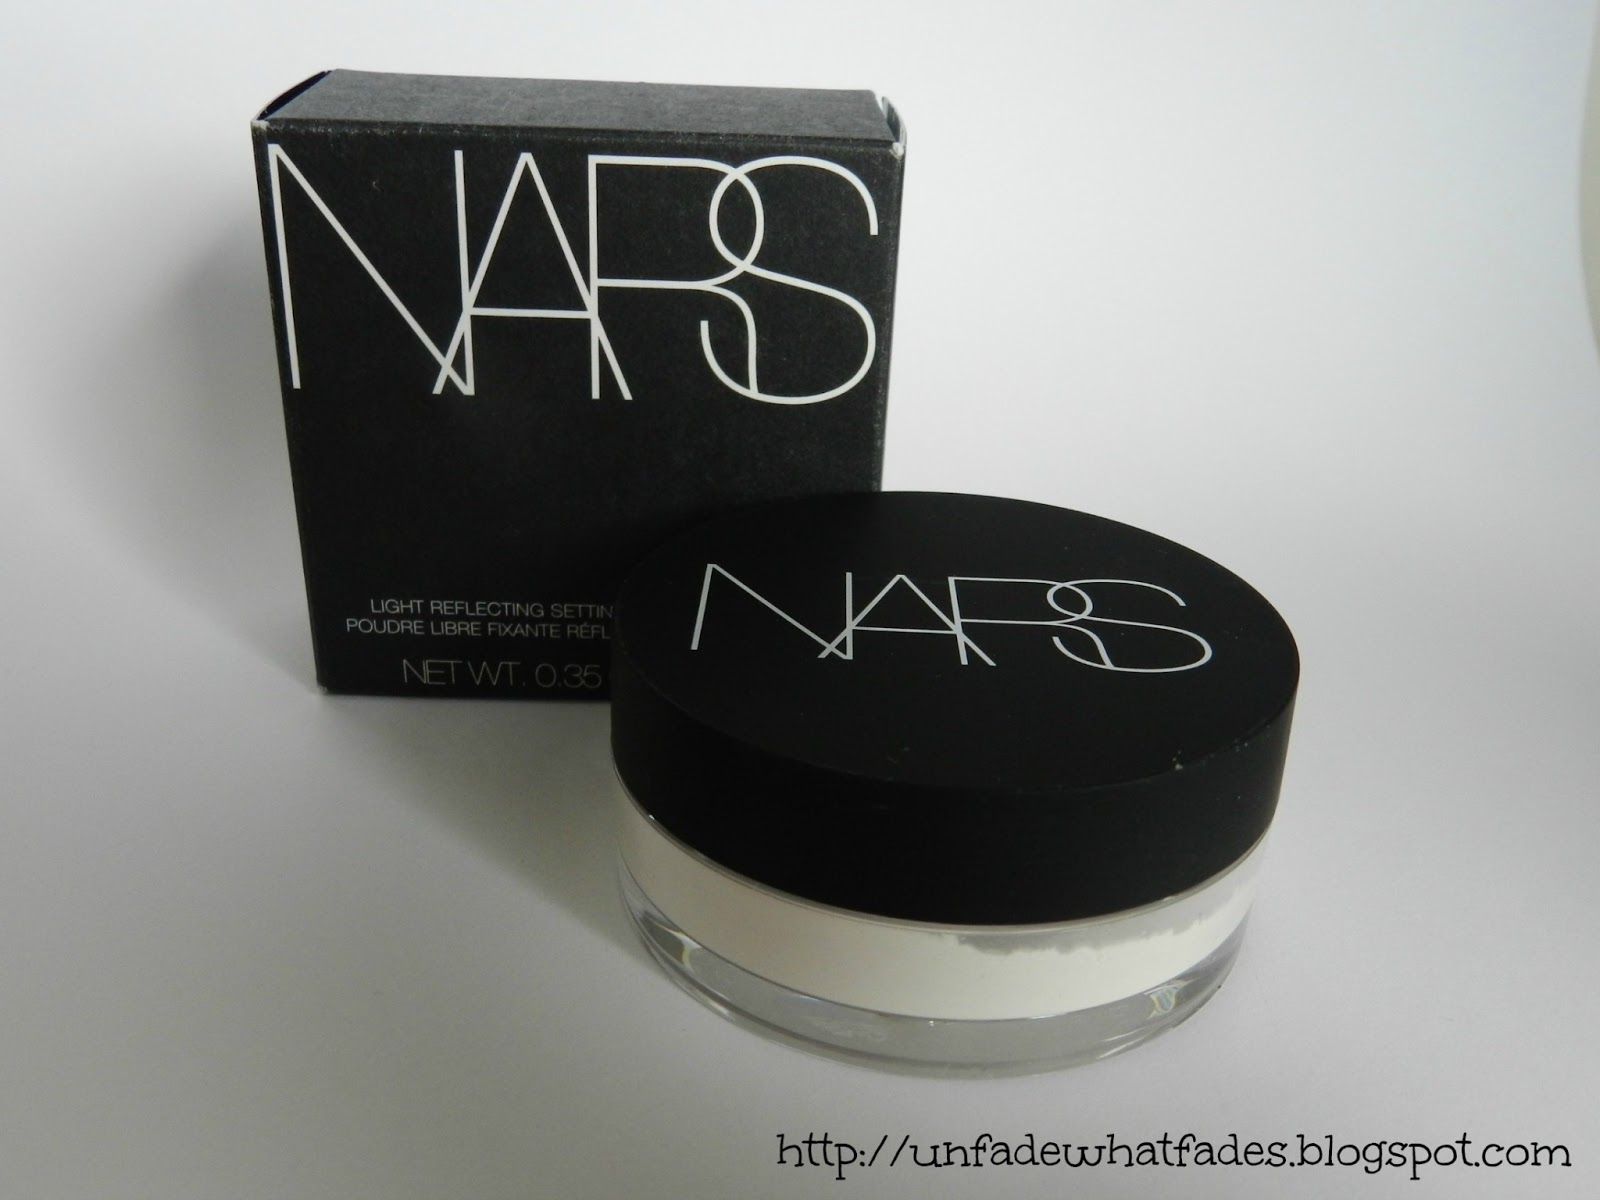 unfade what fades nars light reflecting setting powder loose review. Black Bedroom Furniture Sets. Home Design Ideas